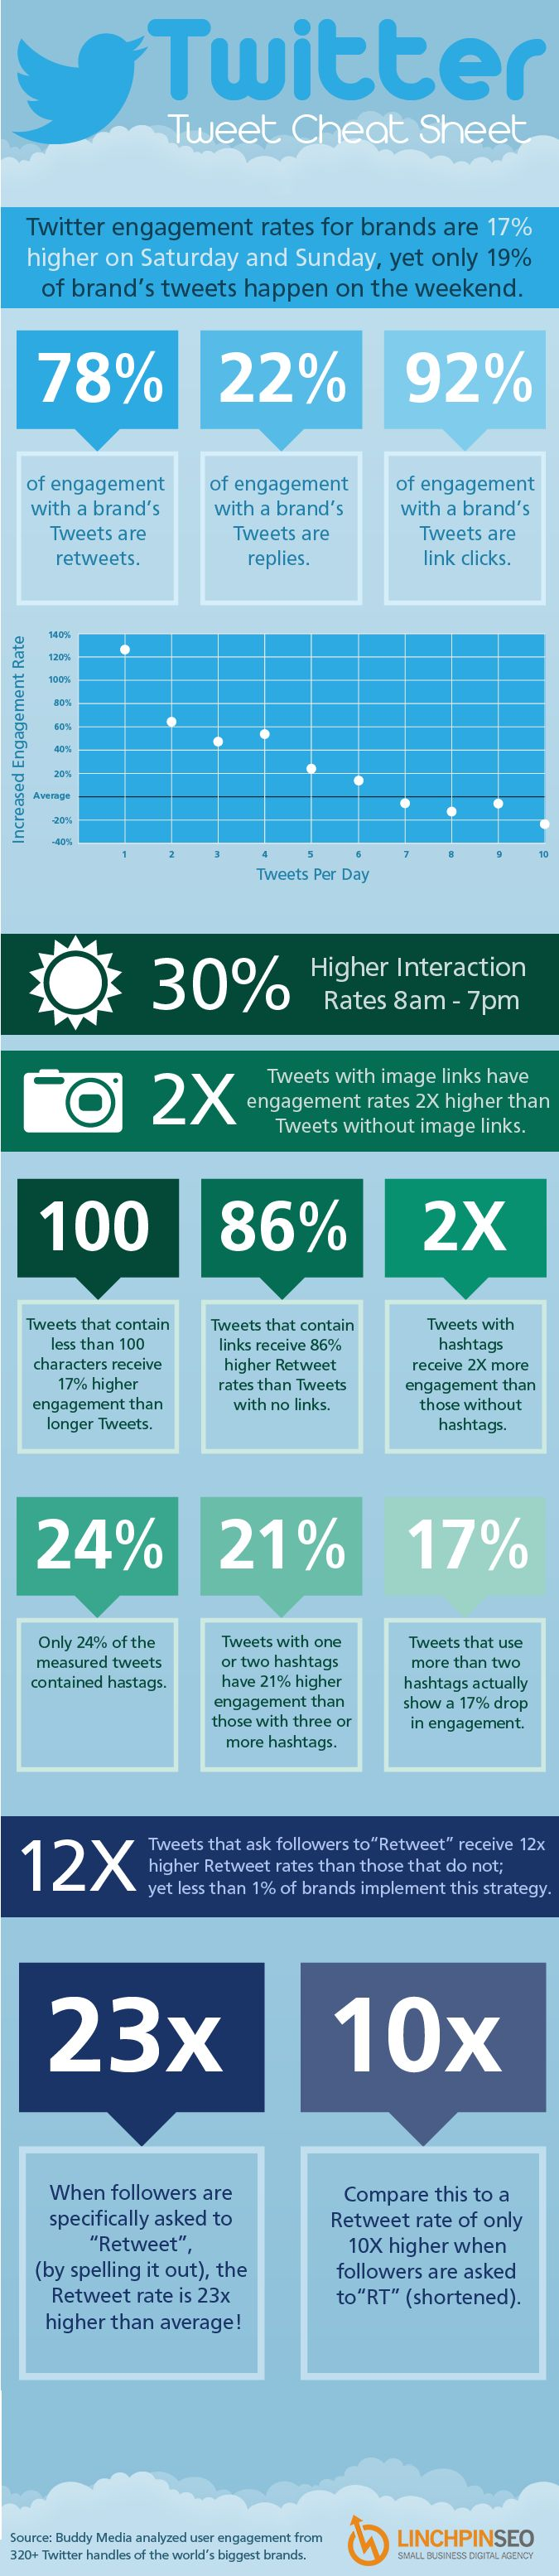 The best practices of Twitter. #infographic